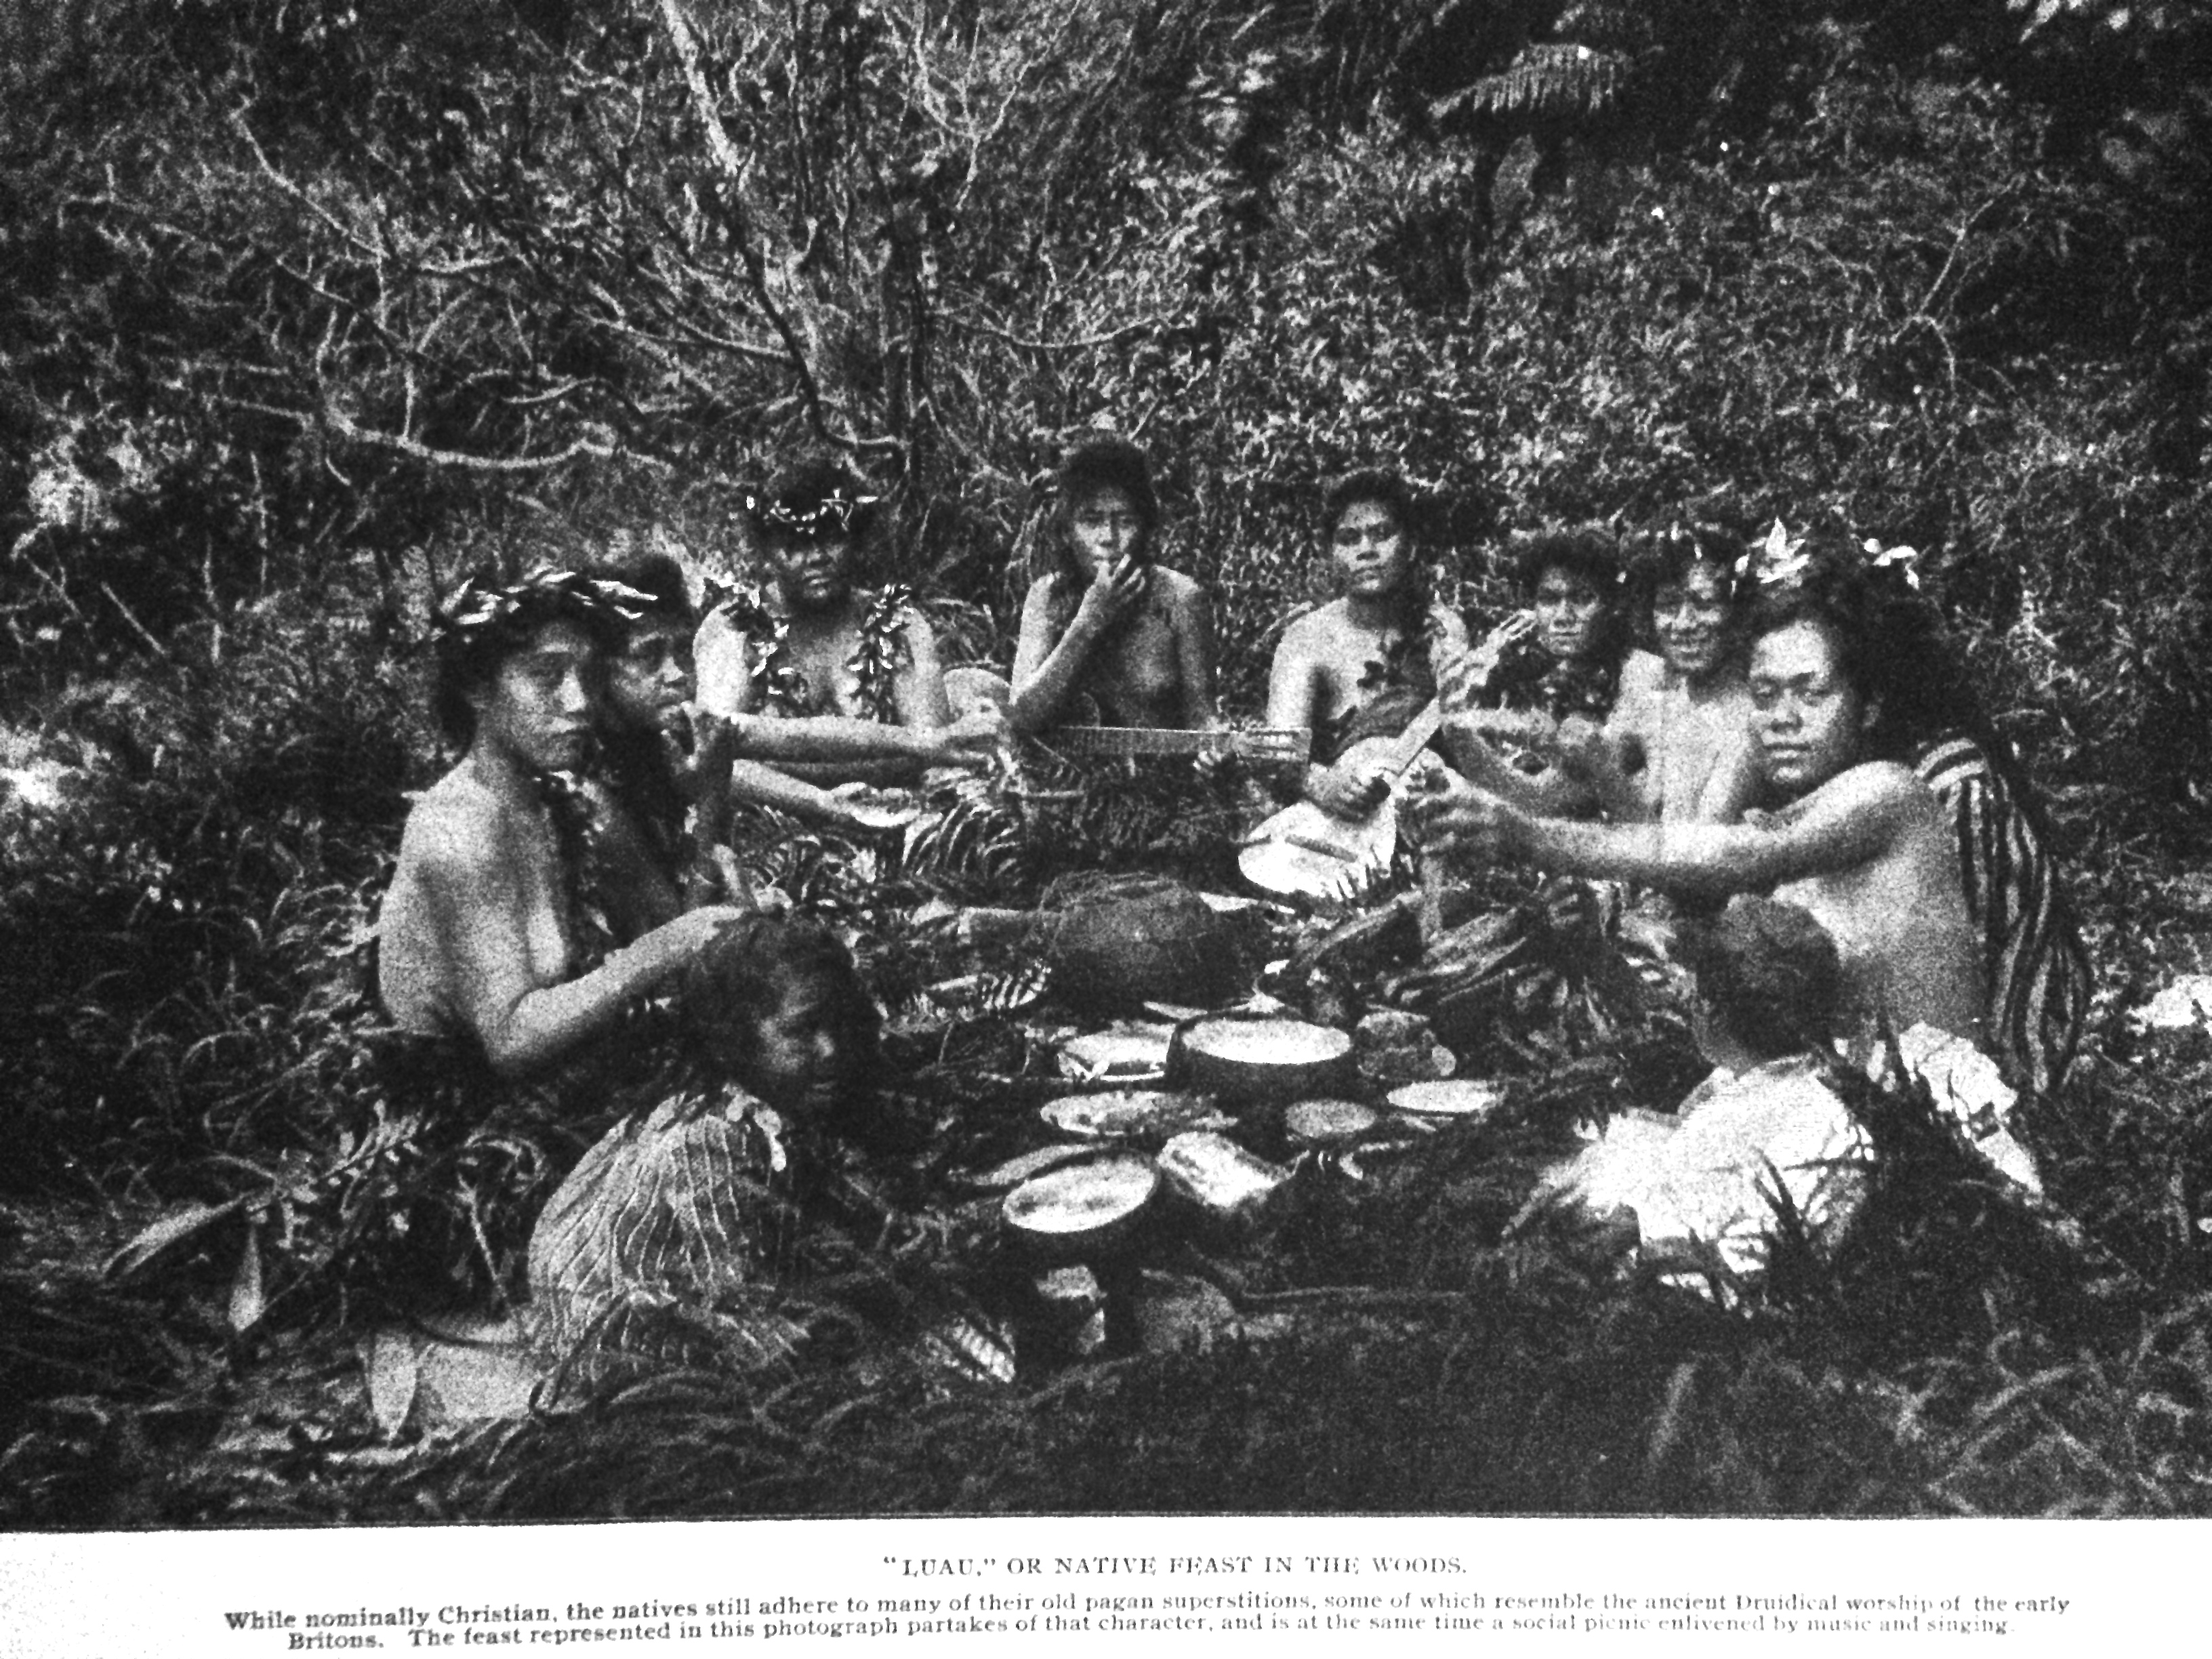 File:Hawaii Luau from 1899.jpg